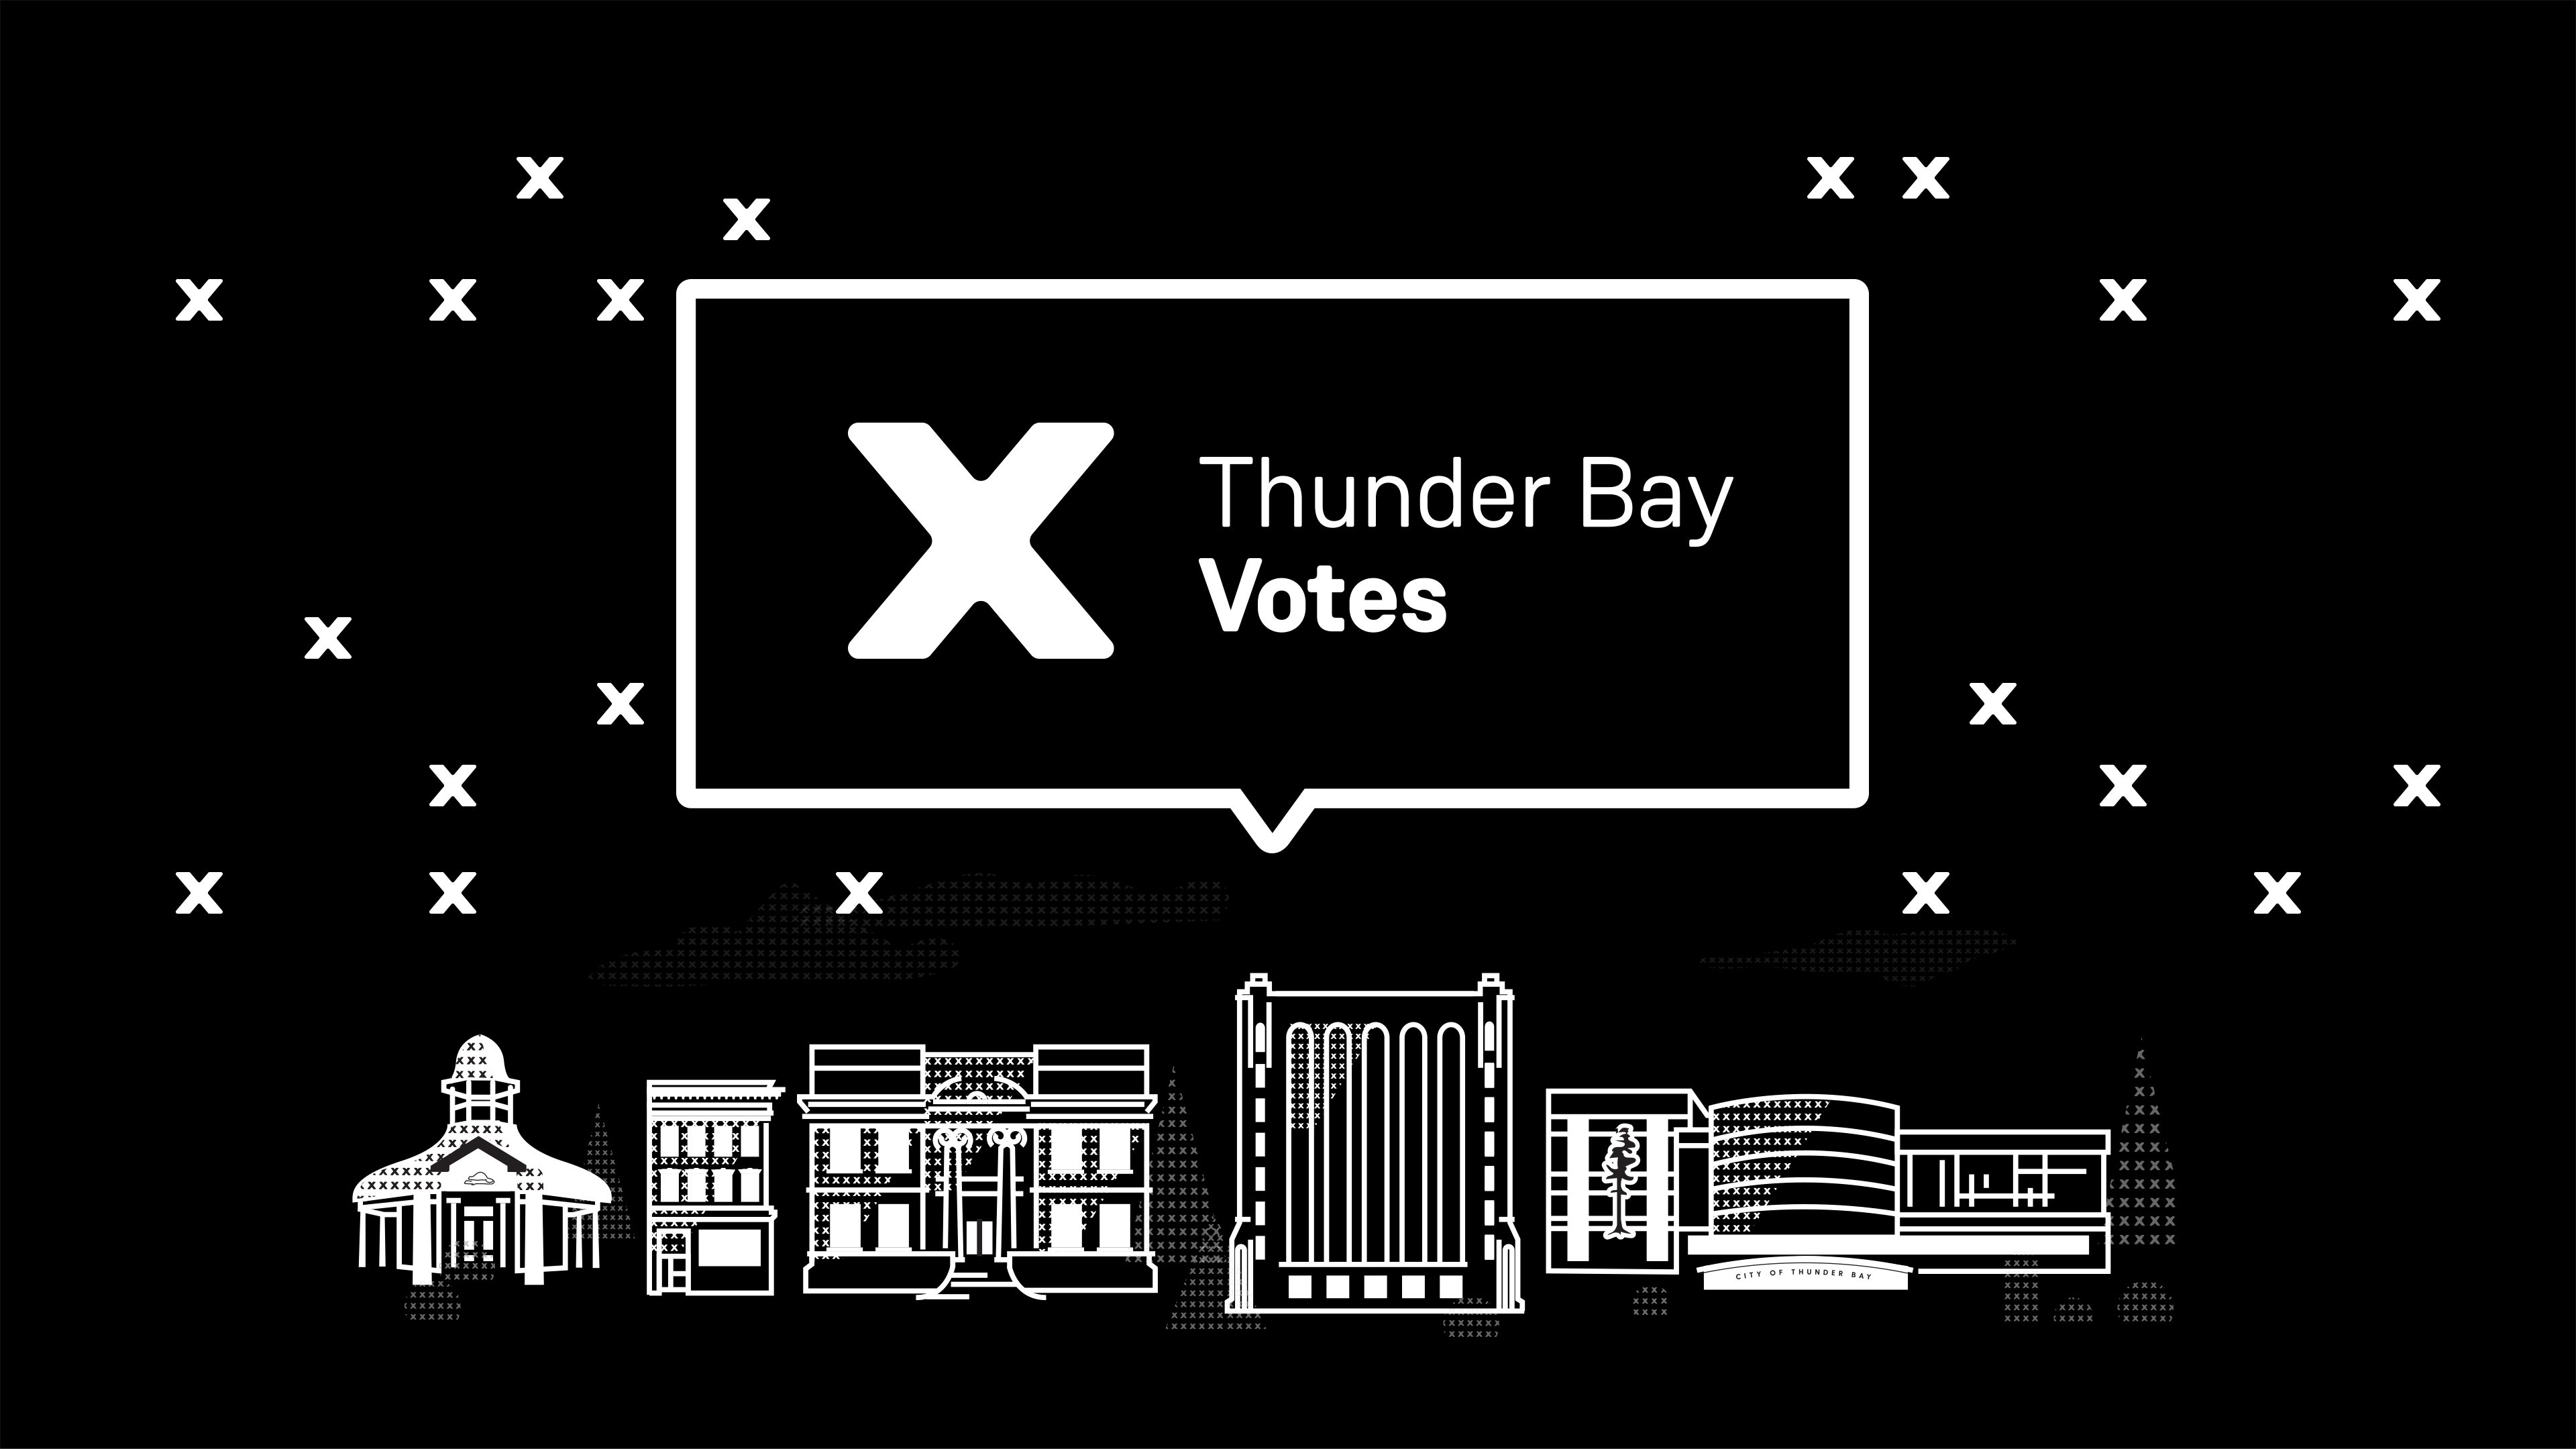 Thunder Bay Votes 2018